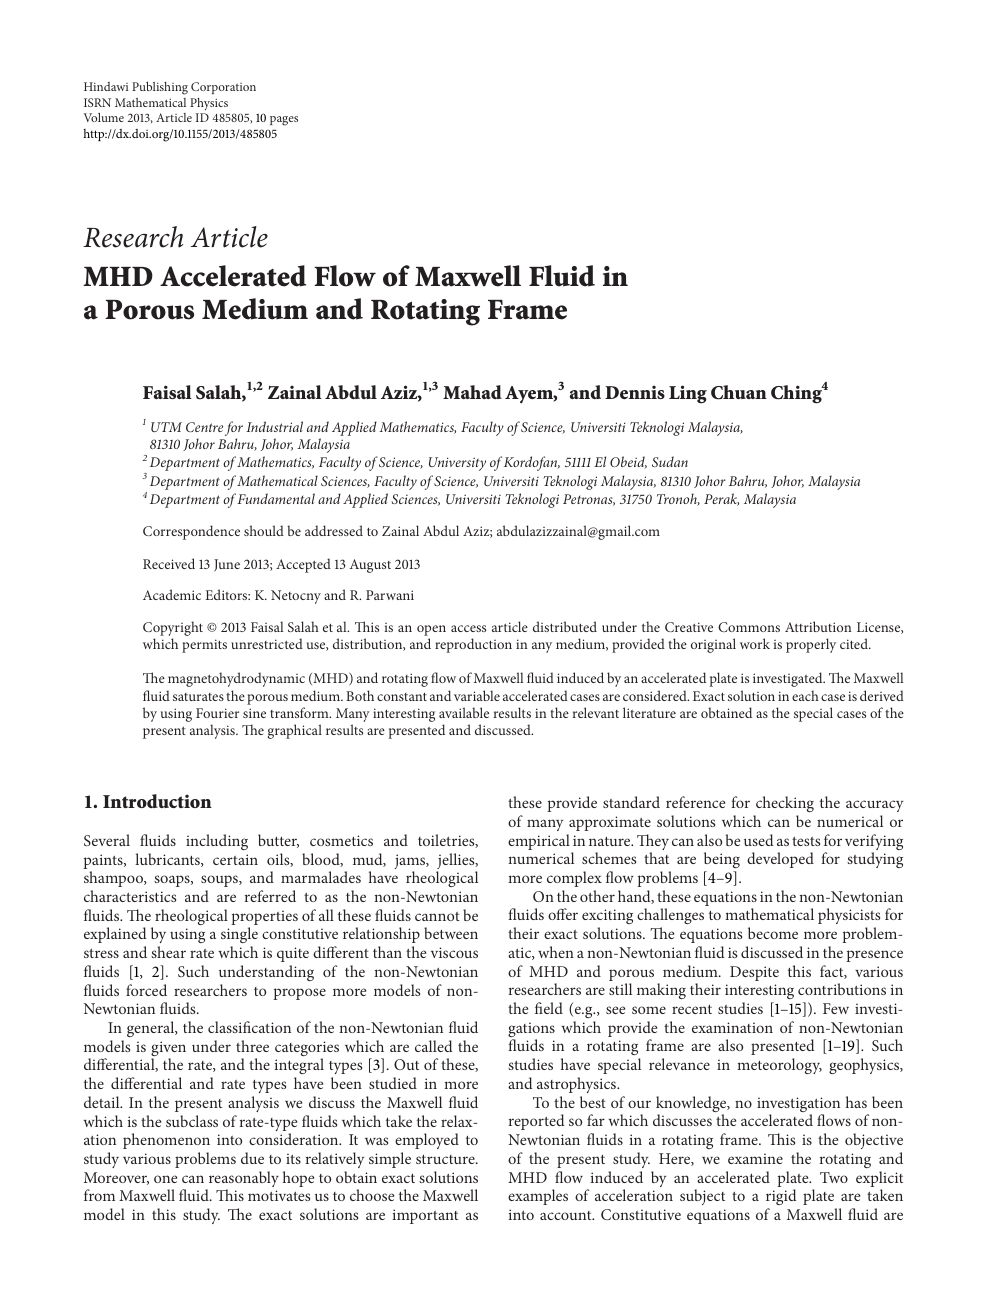 MHD Accelerated Flow of Maxwell Fluid in a Porous Medium and